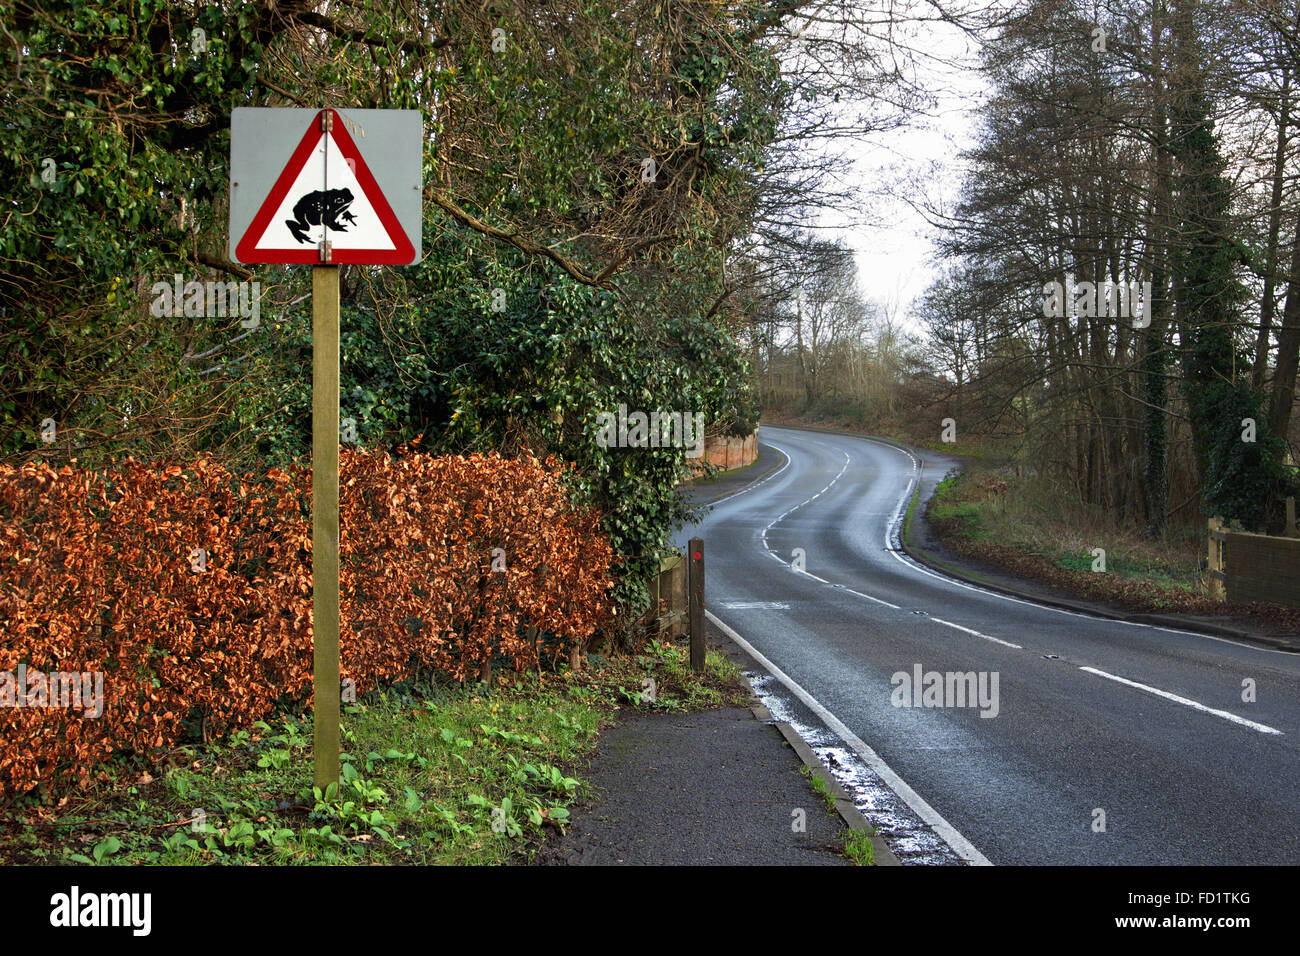 English street sign warning of toads or frogs in the road - Stock Image